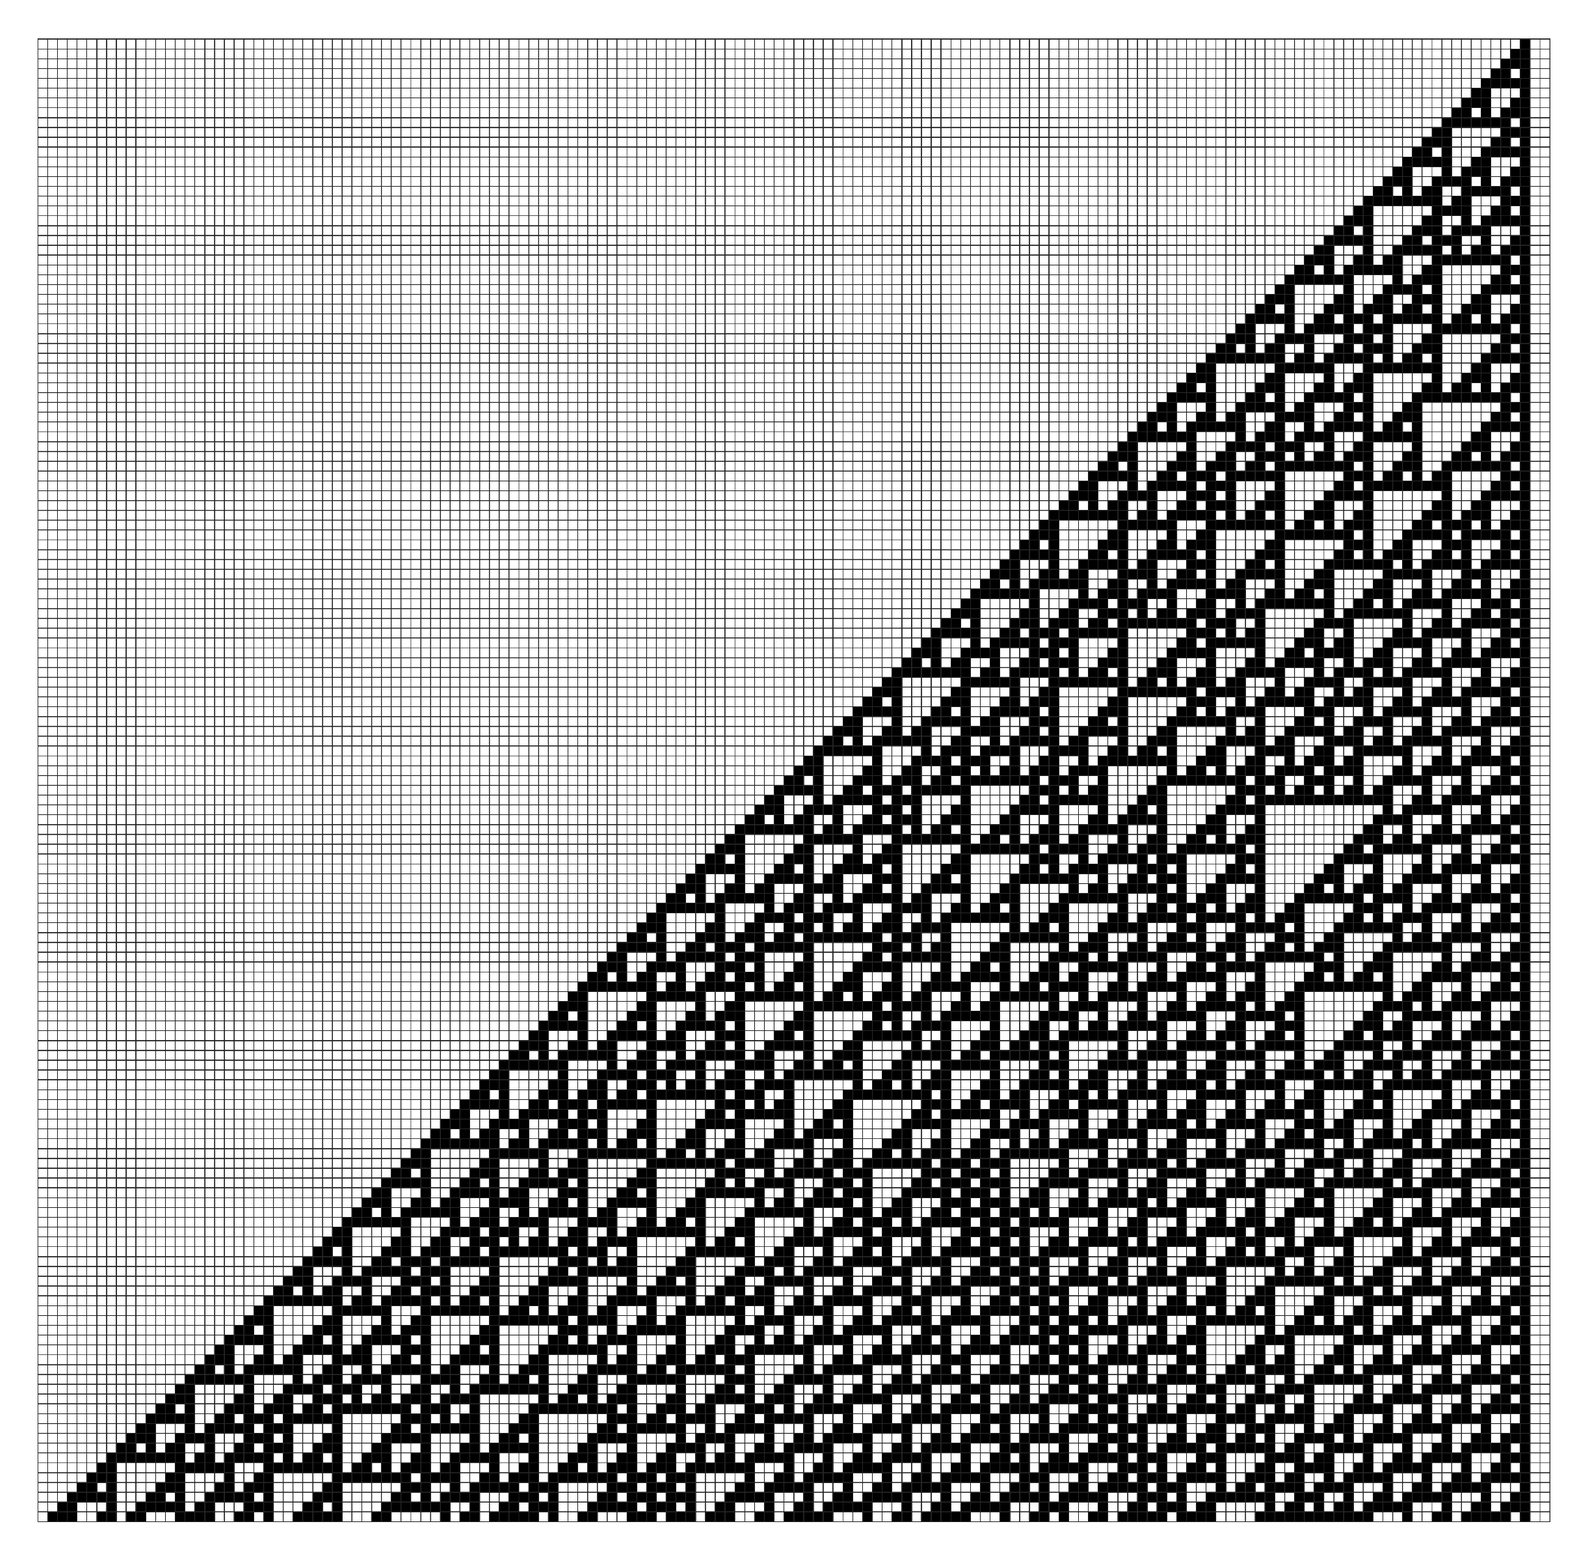 A cellular automaton whose behavior seems neither highly regular nor completely random